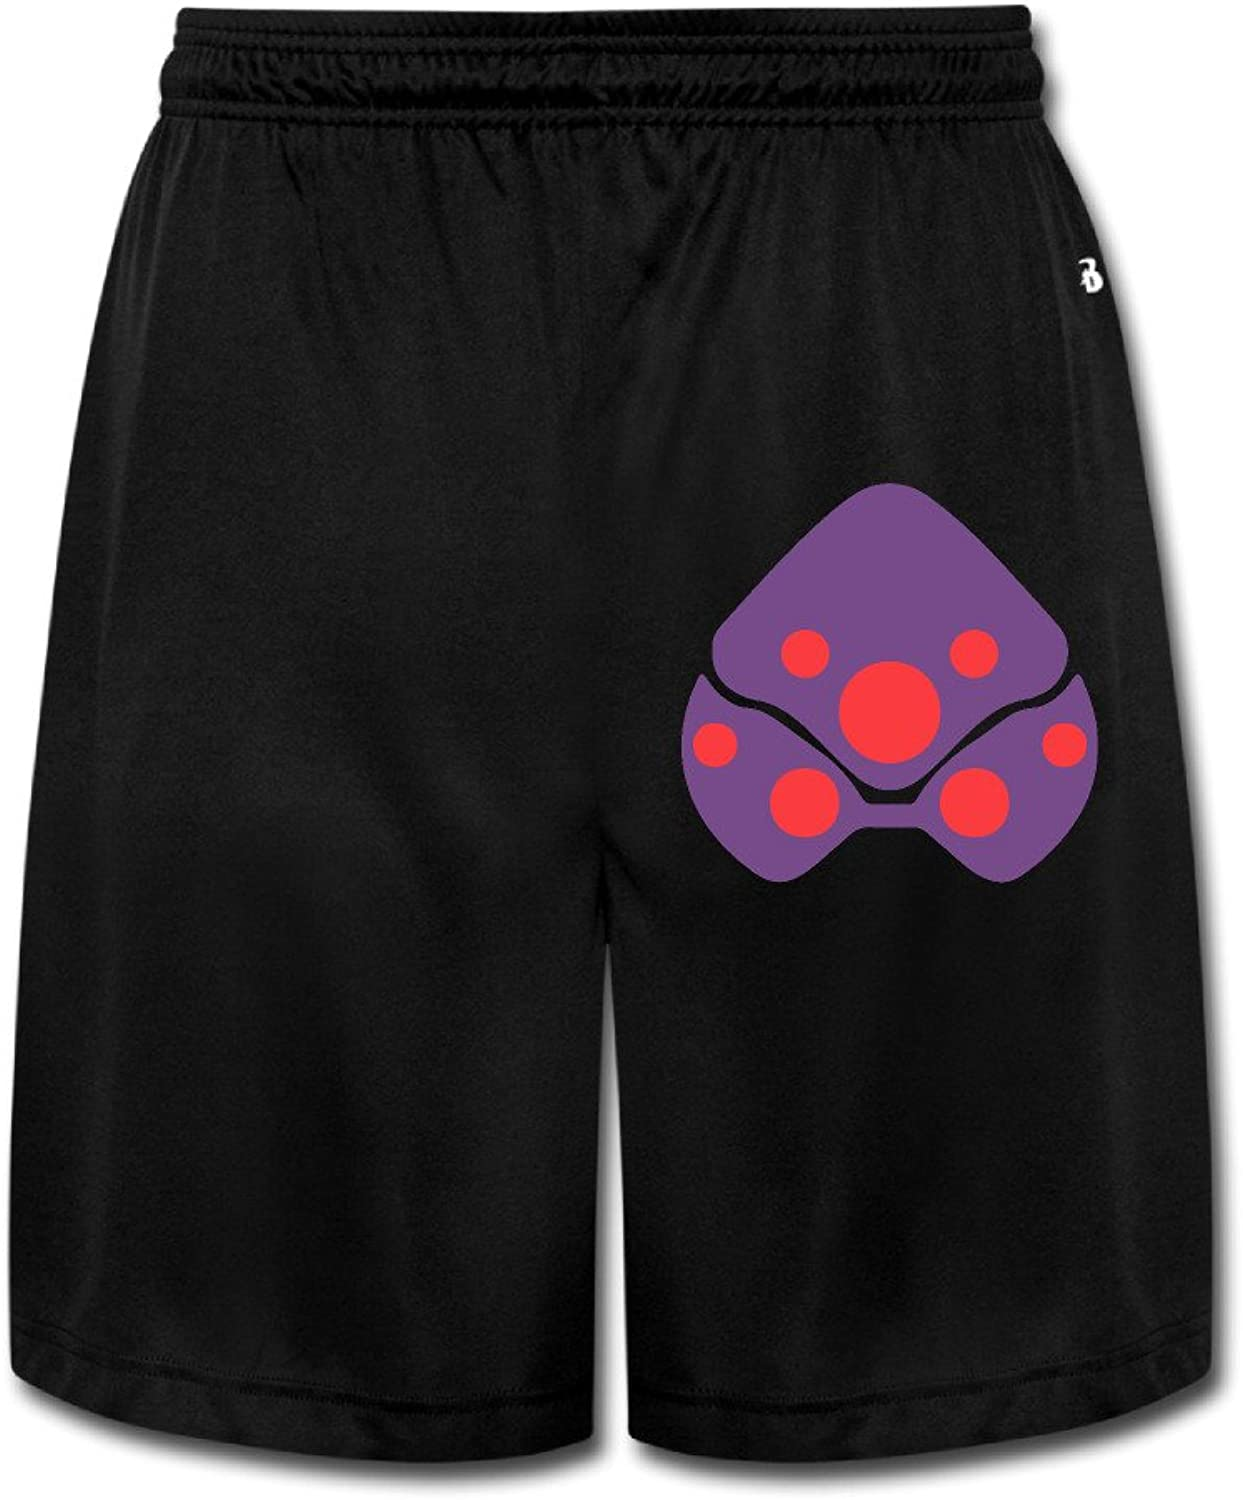 OW Infra Sight Assassin Head Men's Shorts Sweatpants 100% Cotton Black